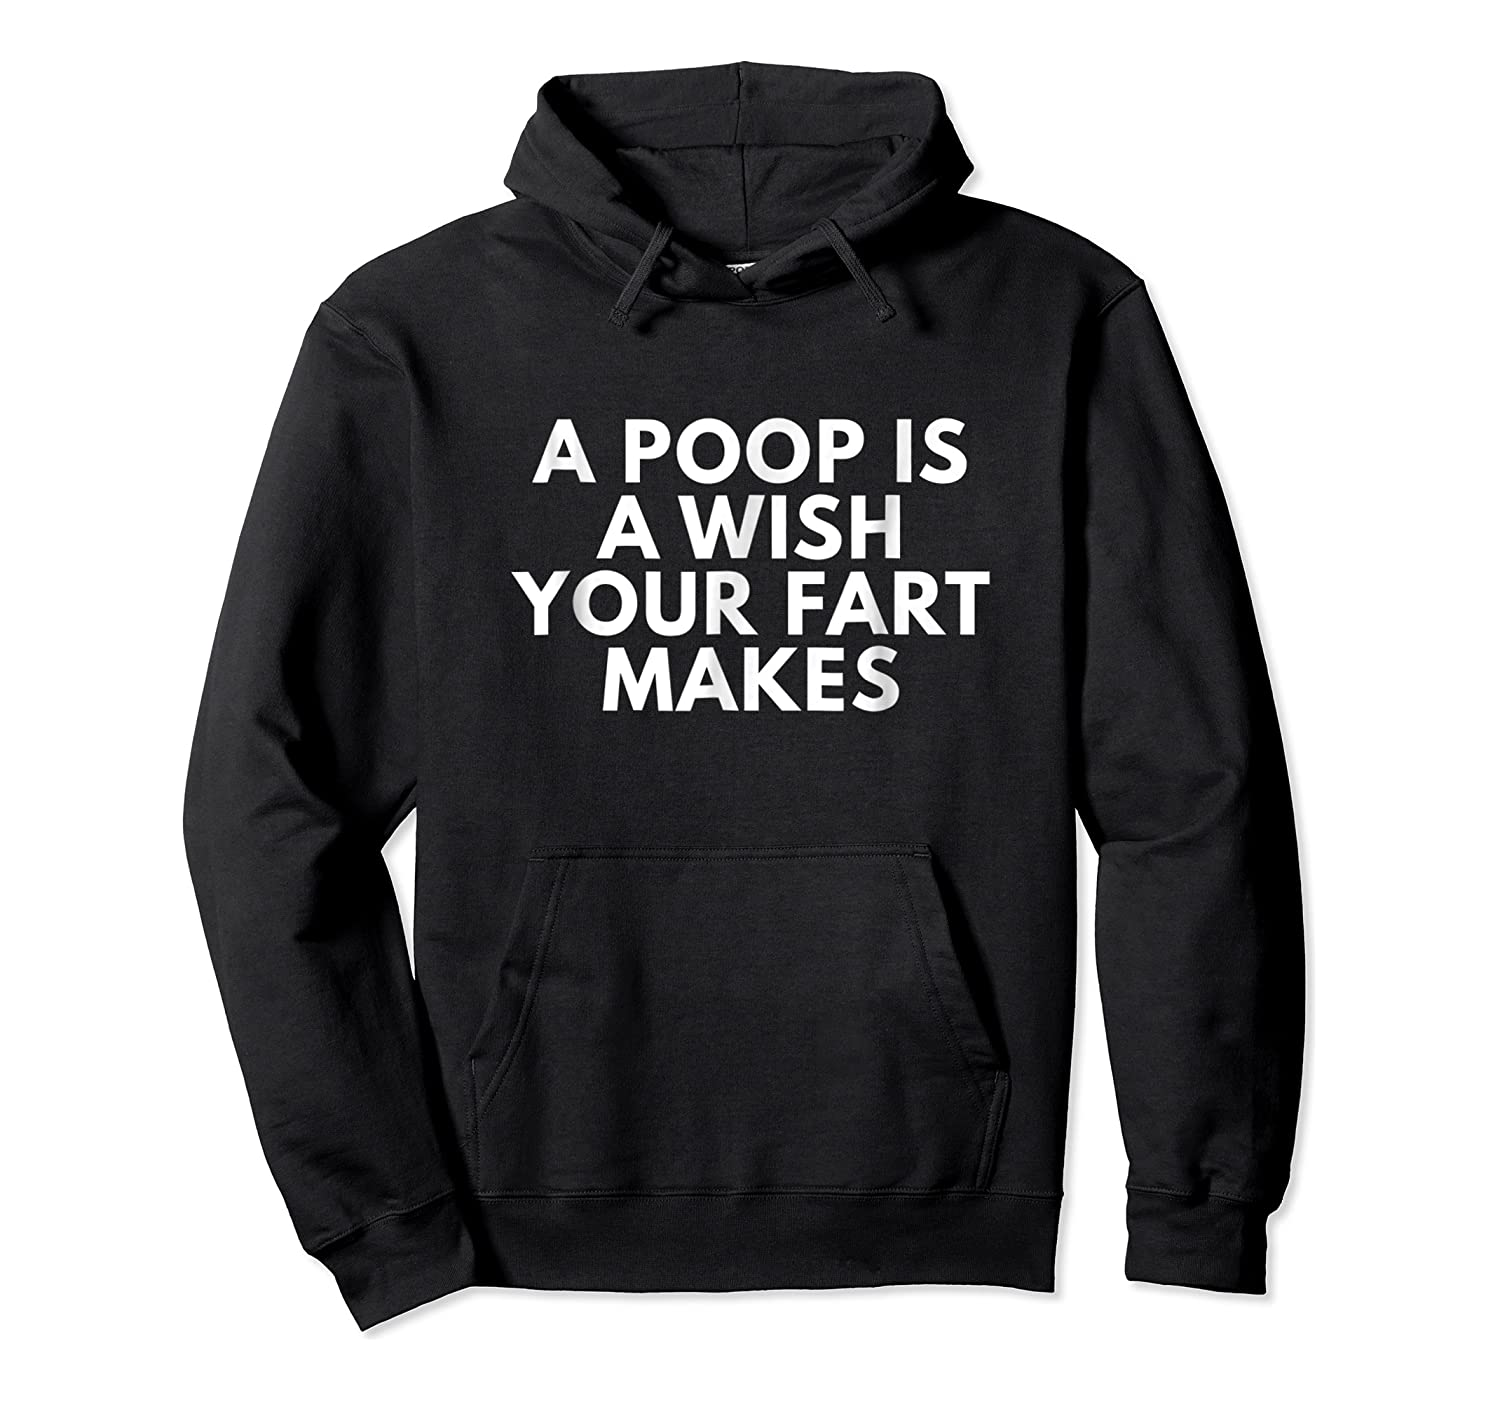 A Poop Is A Wish Your Fart Makes Novelty Gifts Funny T Shirt Unisex Pullover Hoodie